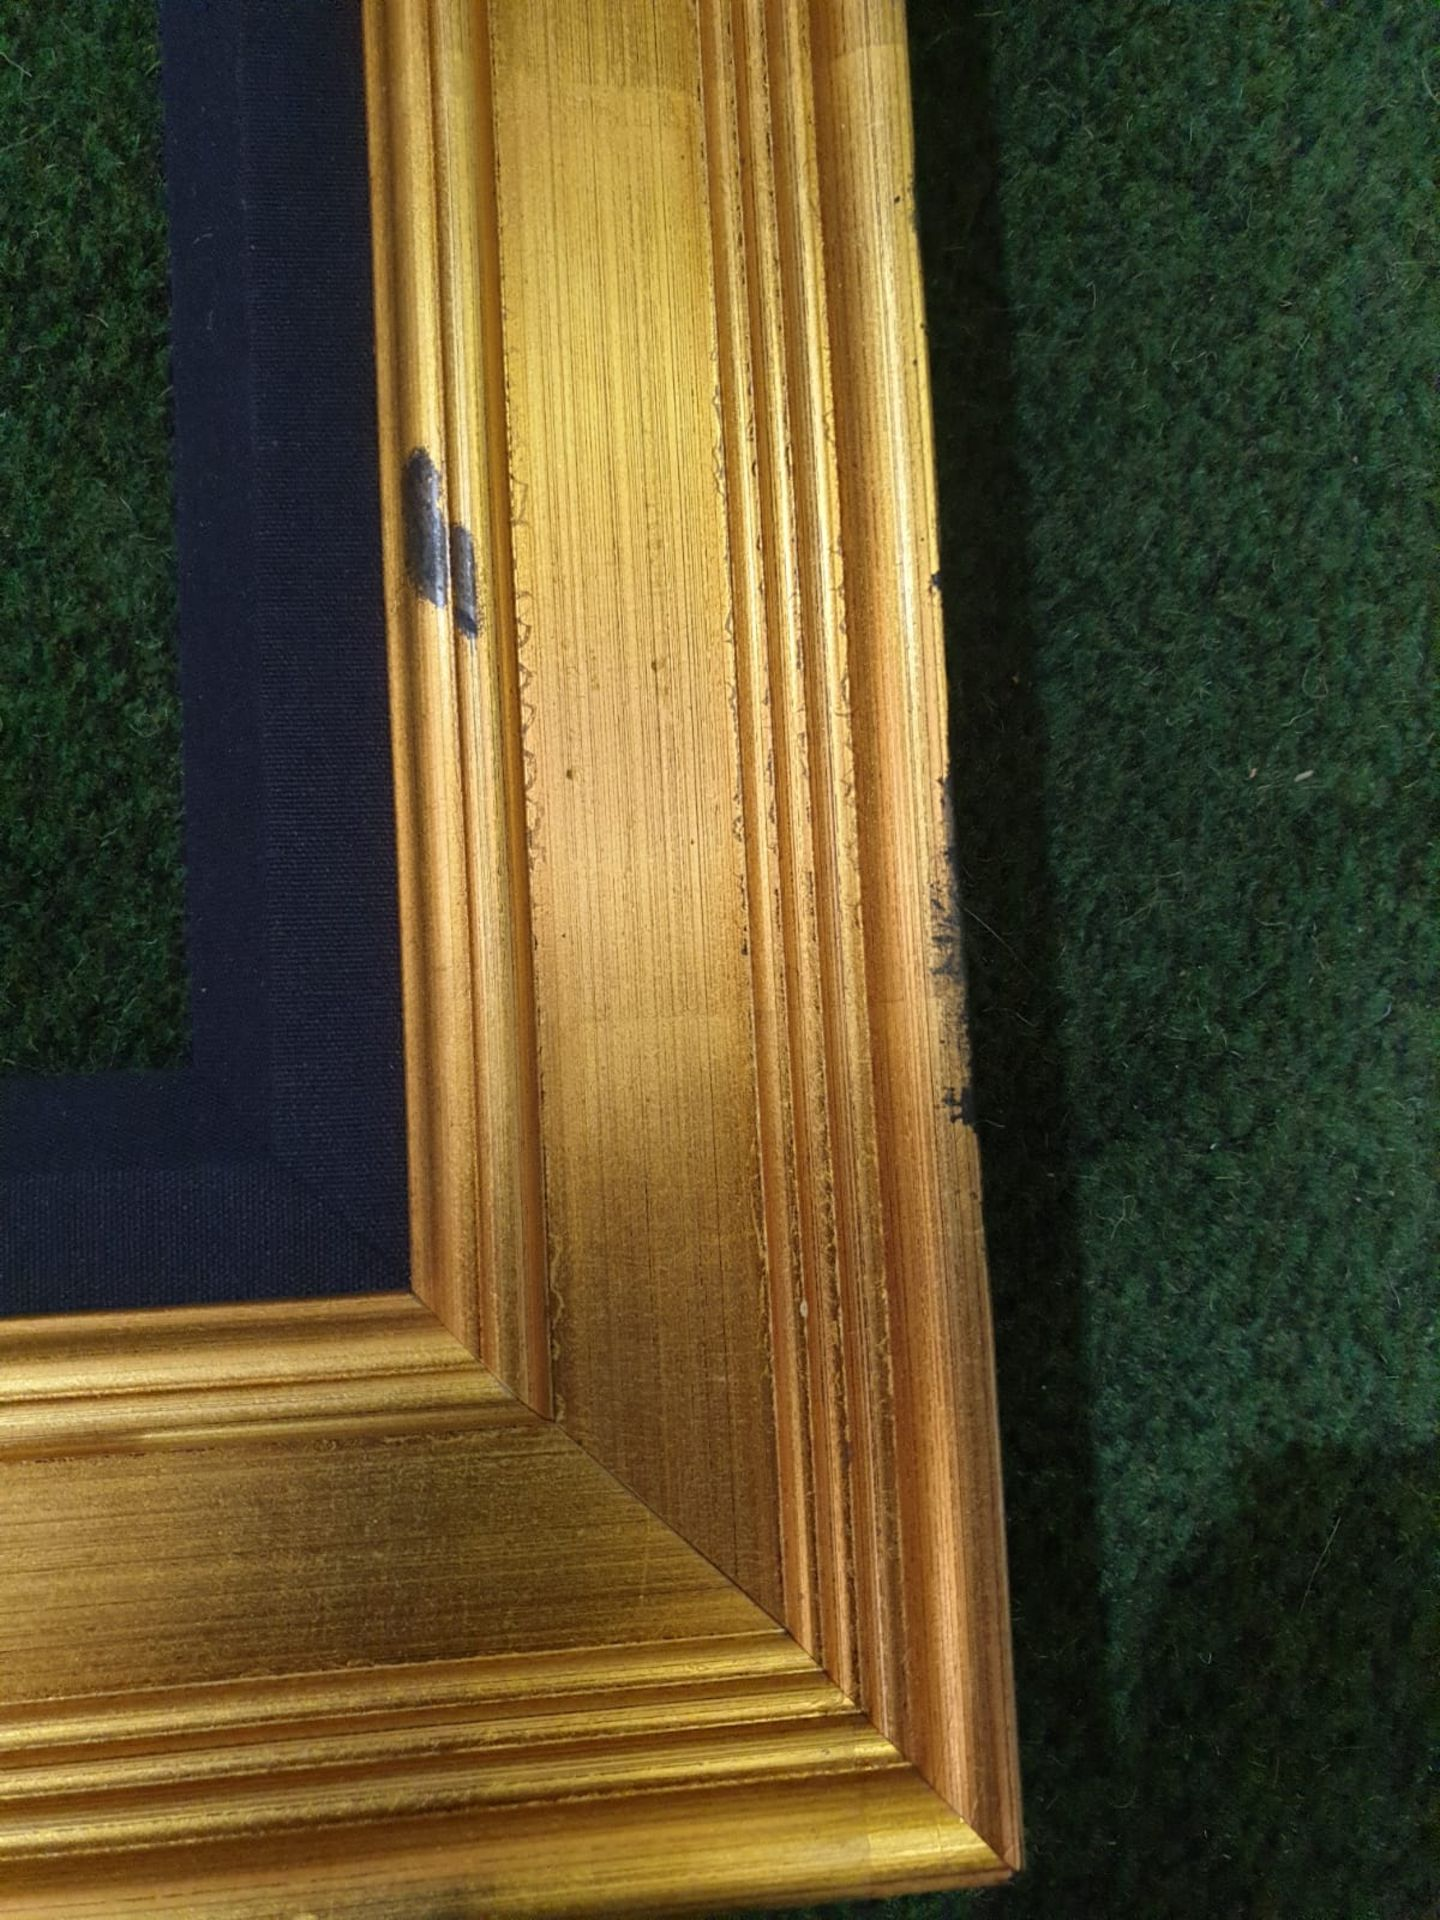 Gilt picture frame 97 x 150cm - Image 3 of 3